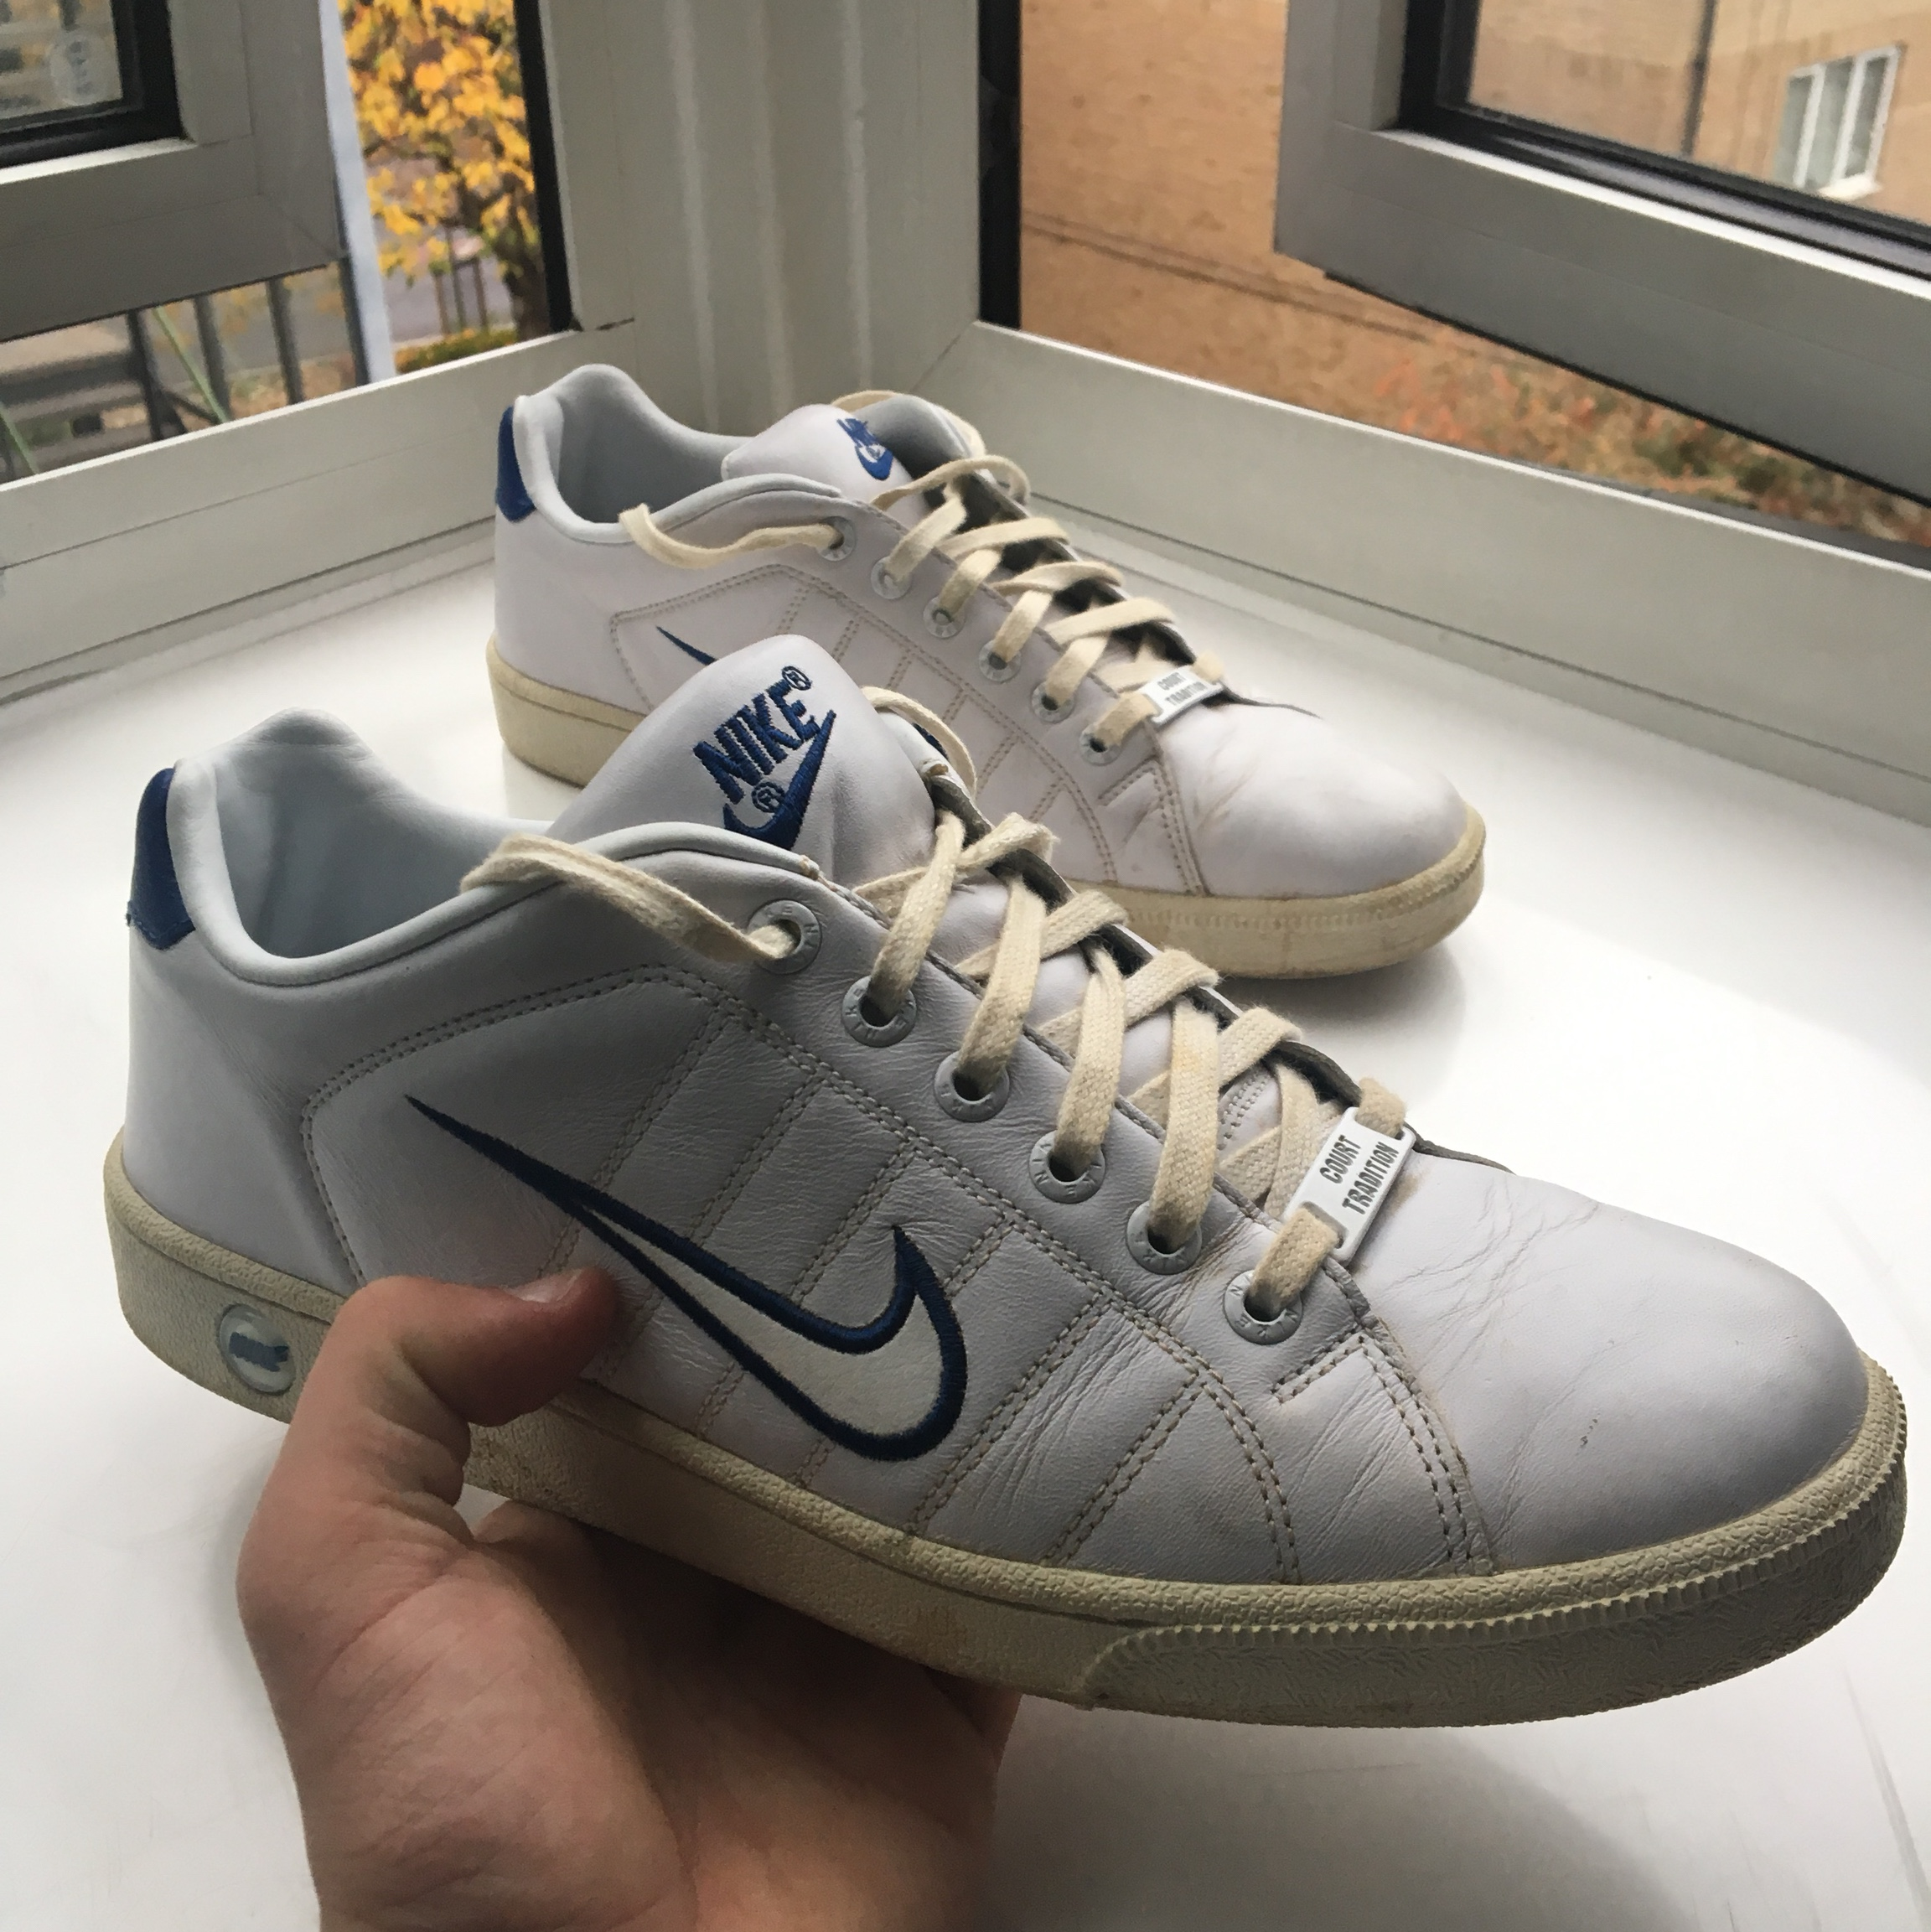 Nike Trainers vintage white with blue